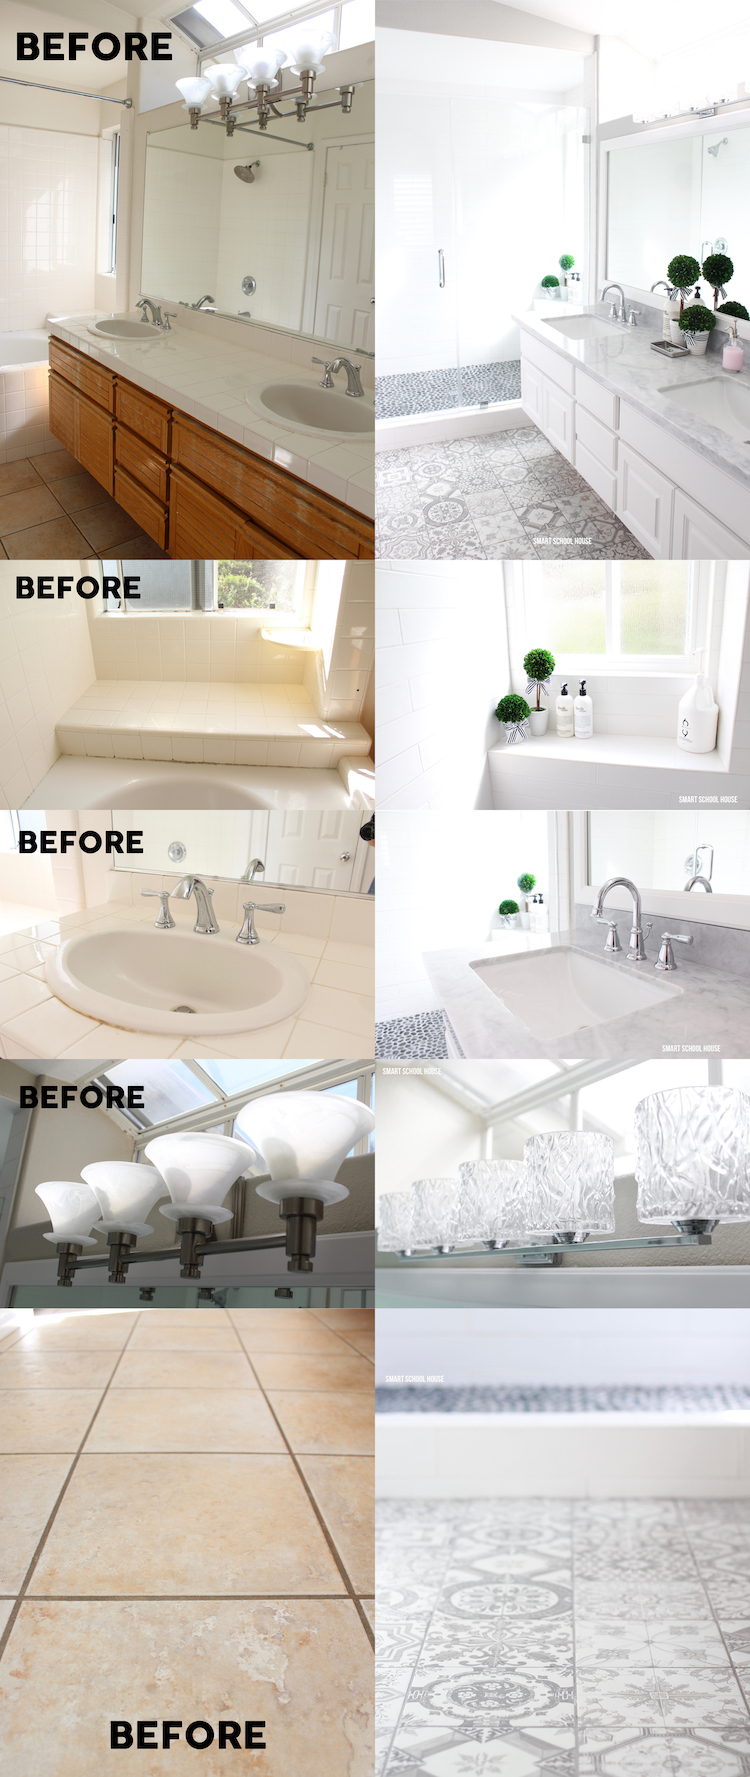 Gray and white bathroom ideas. GORGEOUS results with picking just two colors: gray and white!